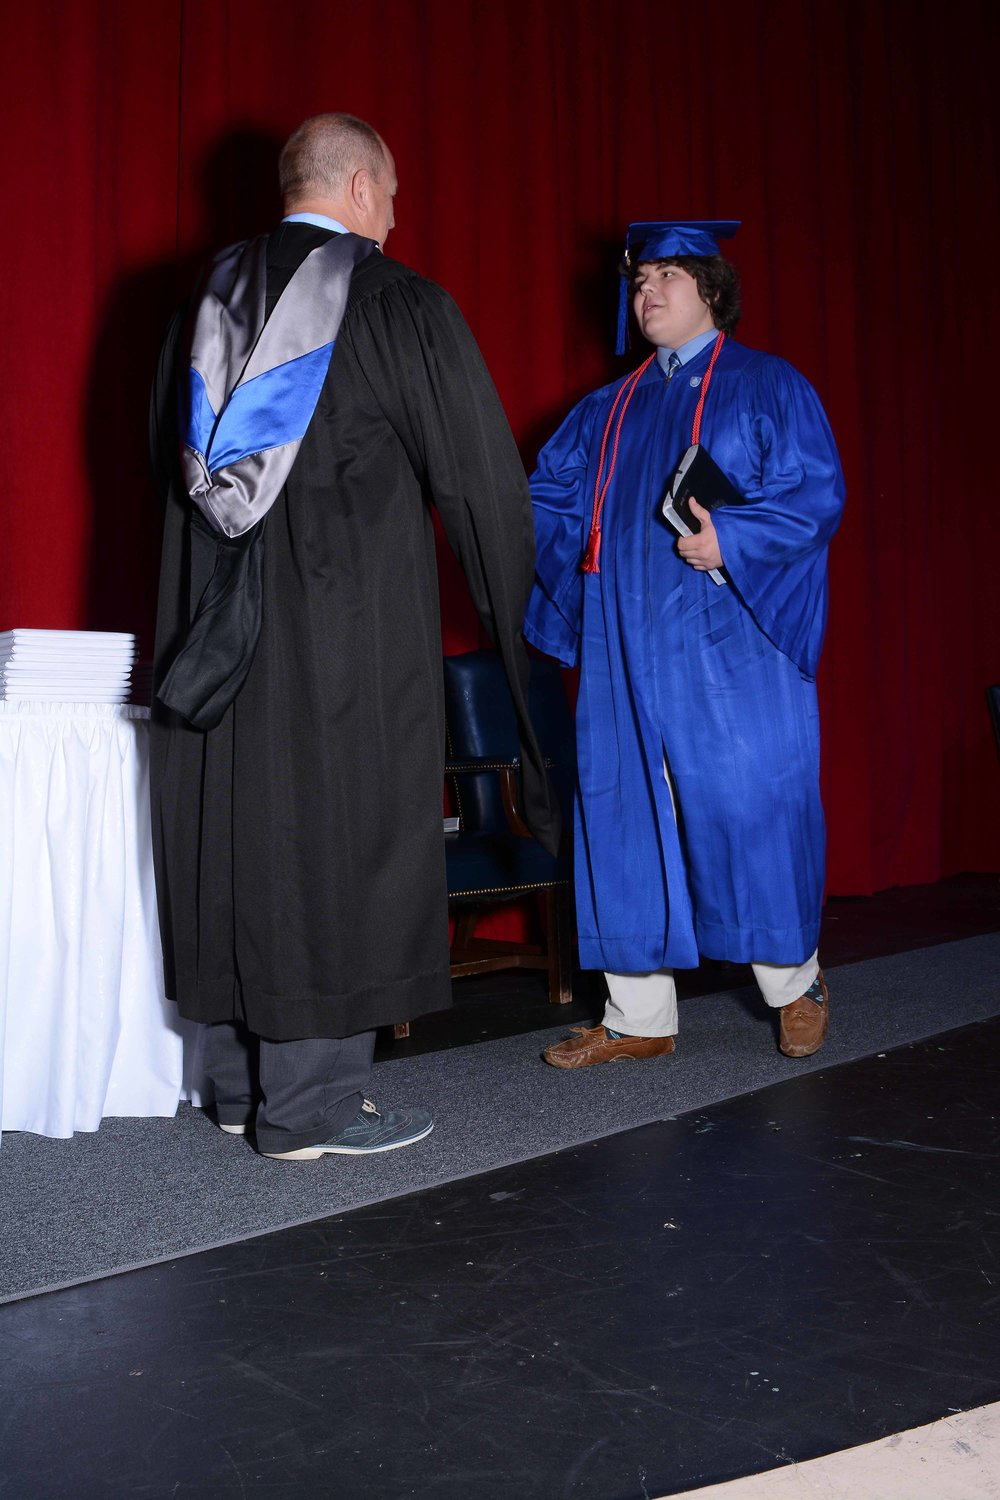 May14 Commencement49.jpg